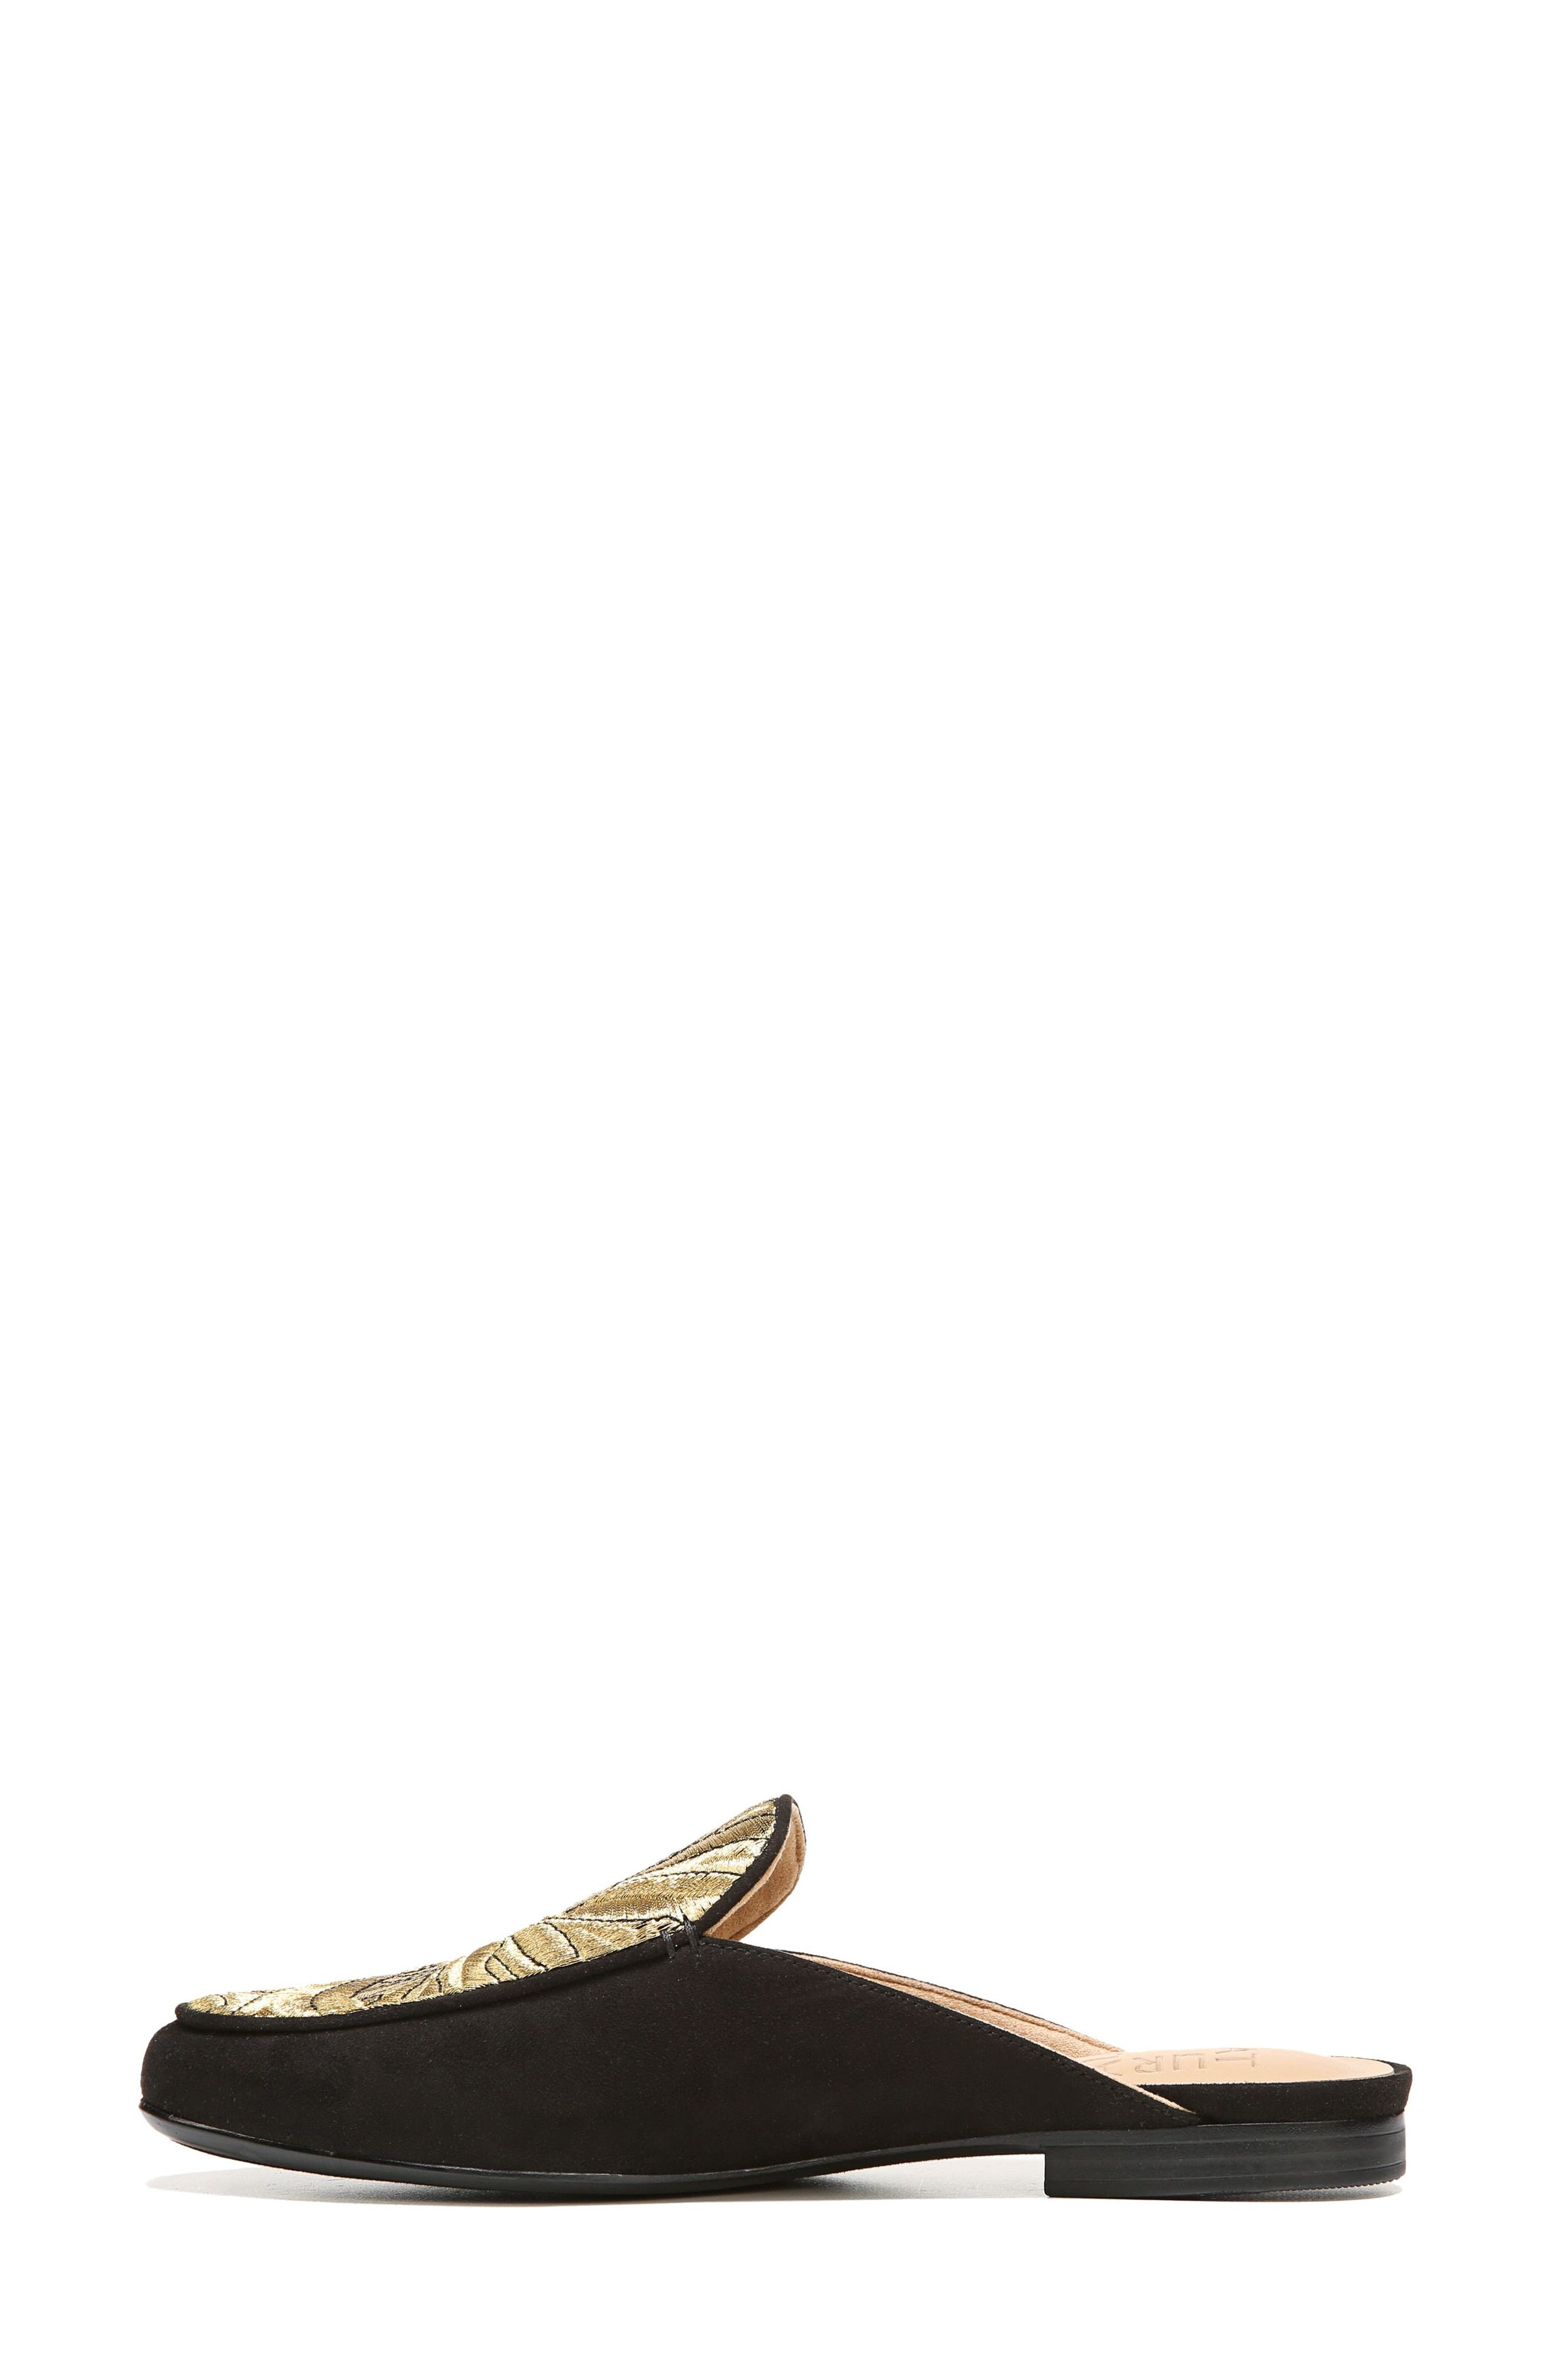 Eden II Embroidered Mule,                             Alternate thumbnail 3, color,                             Black/ Gold Leather